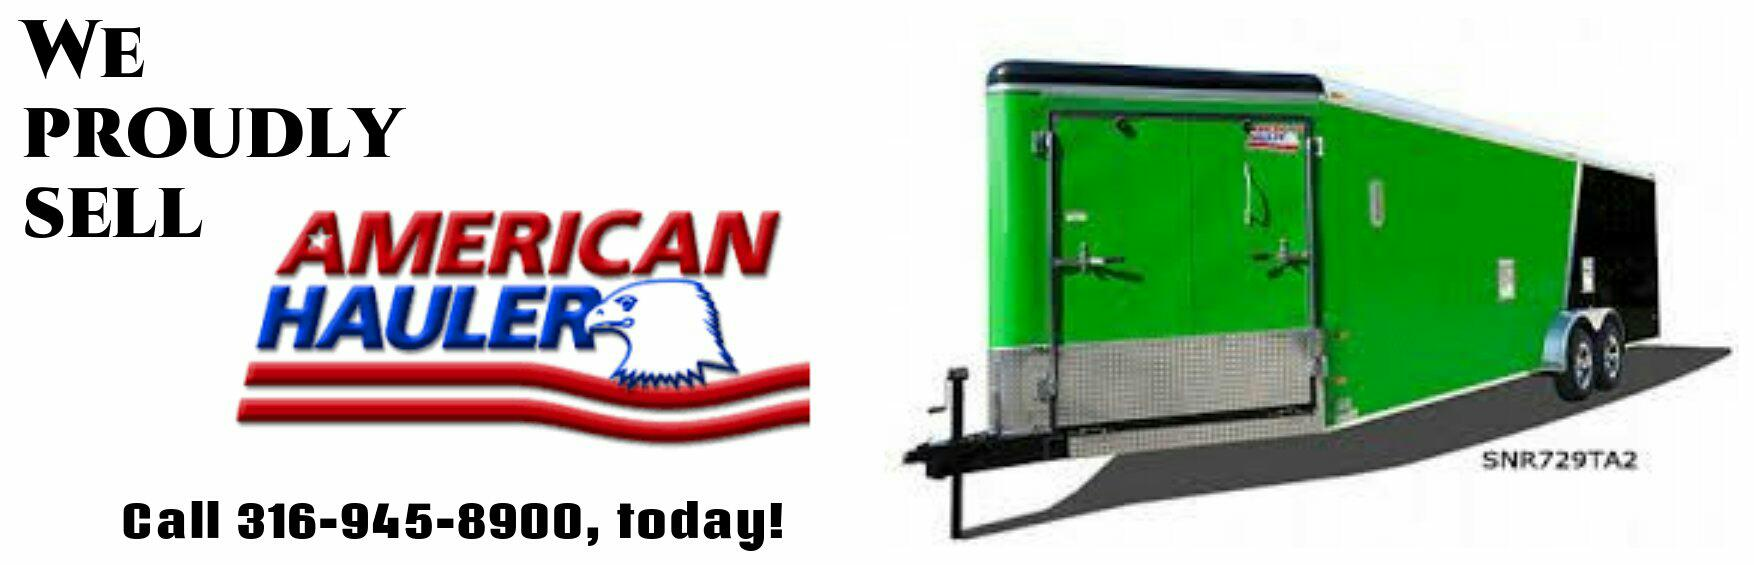 AMERICAN HAULER TRAILERS SOLD HERE!